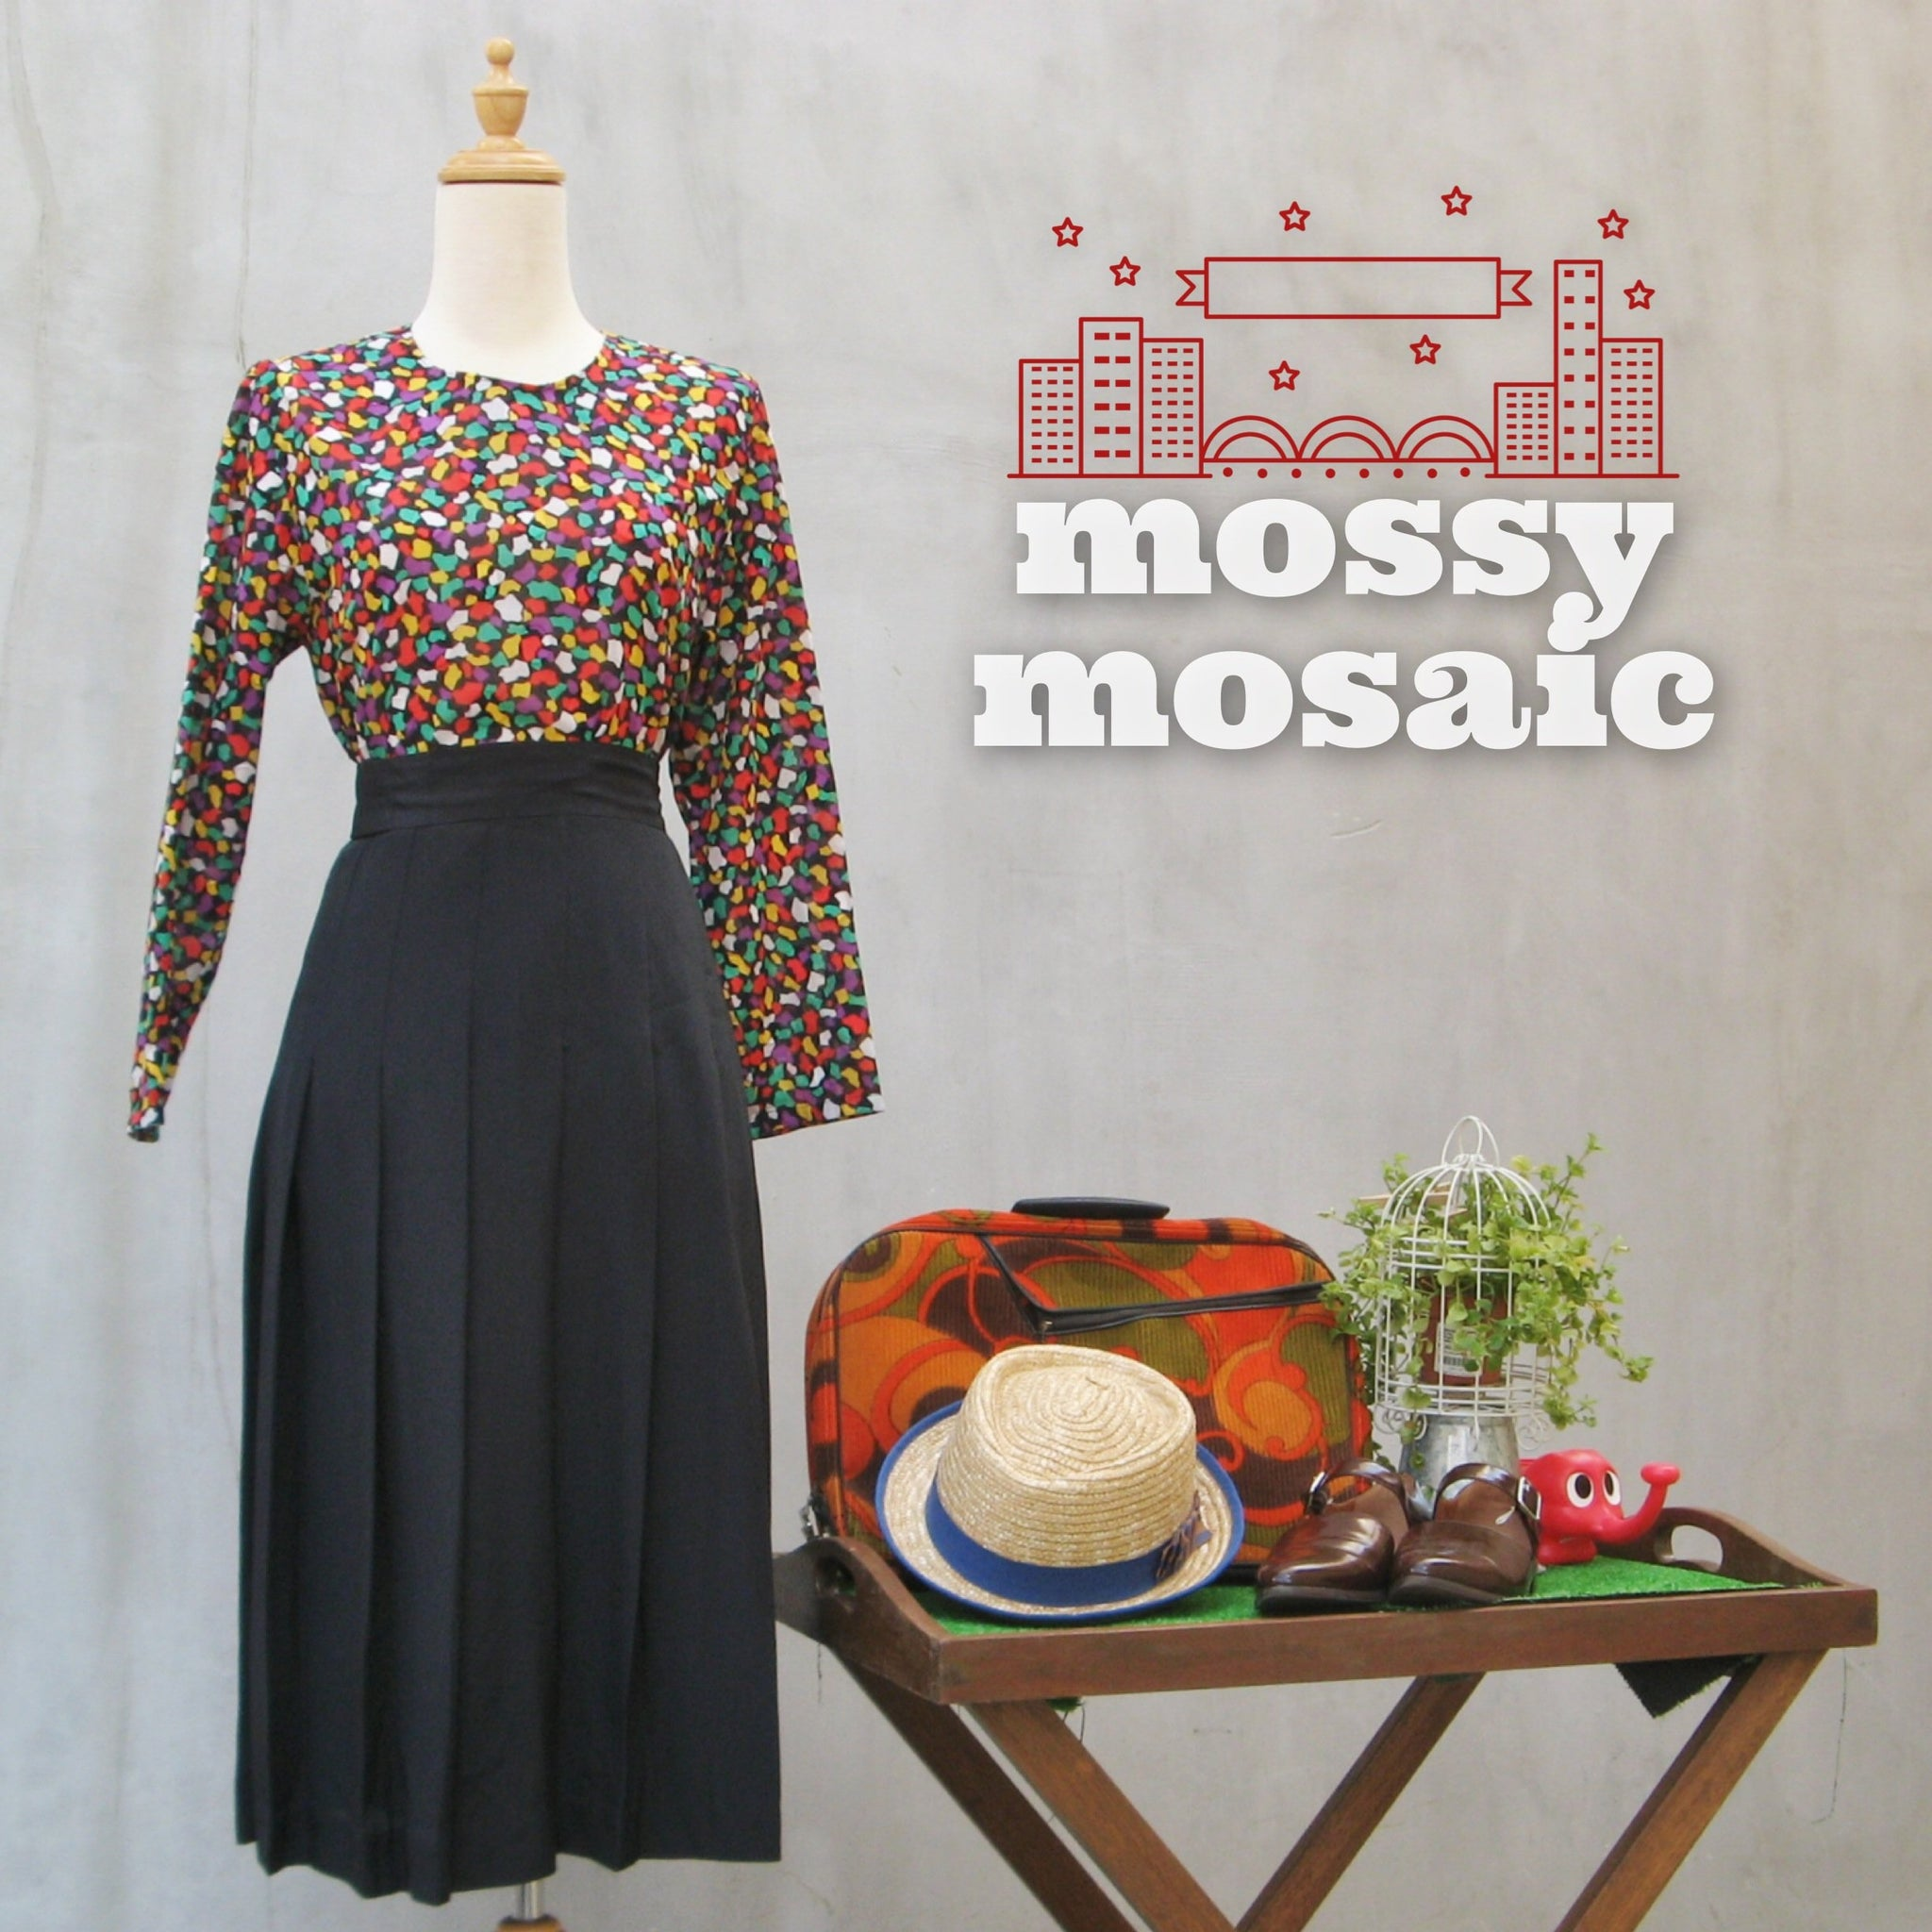 Mossy Mosaic | Multi-colored Confetti Vintage 1960s back button-down Blouse | Textured Polka dots!